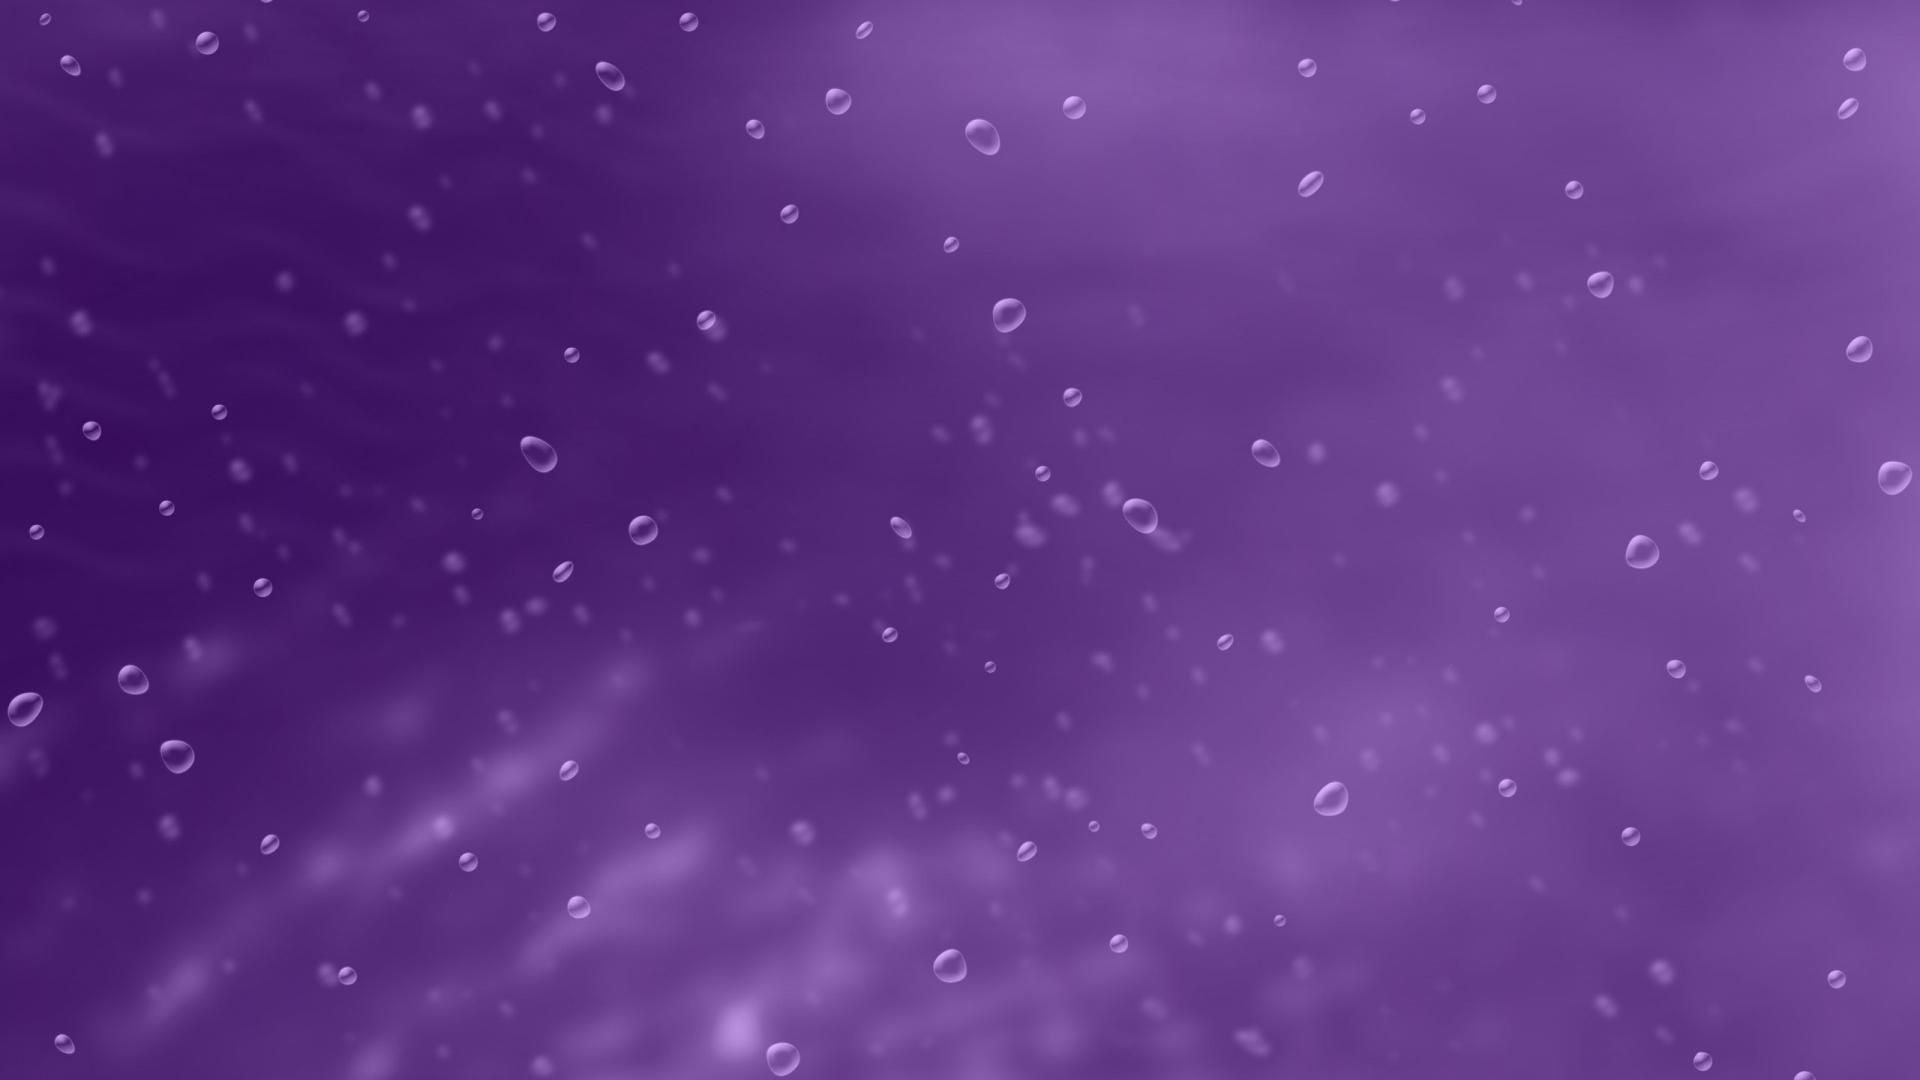 Dark Purple Bubble For Desktop Widescreen and HD backgrounds Wallpapers